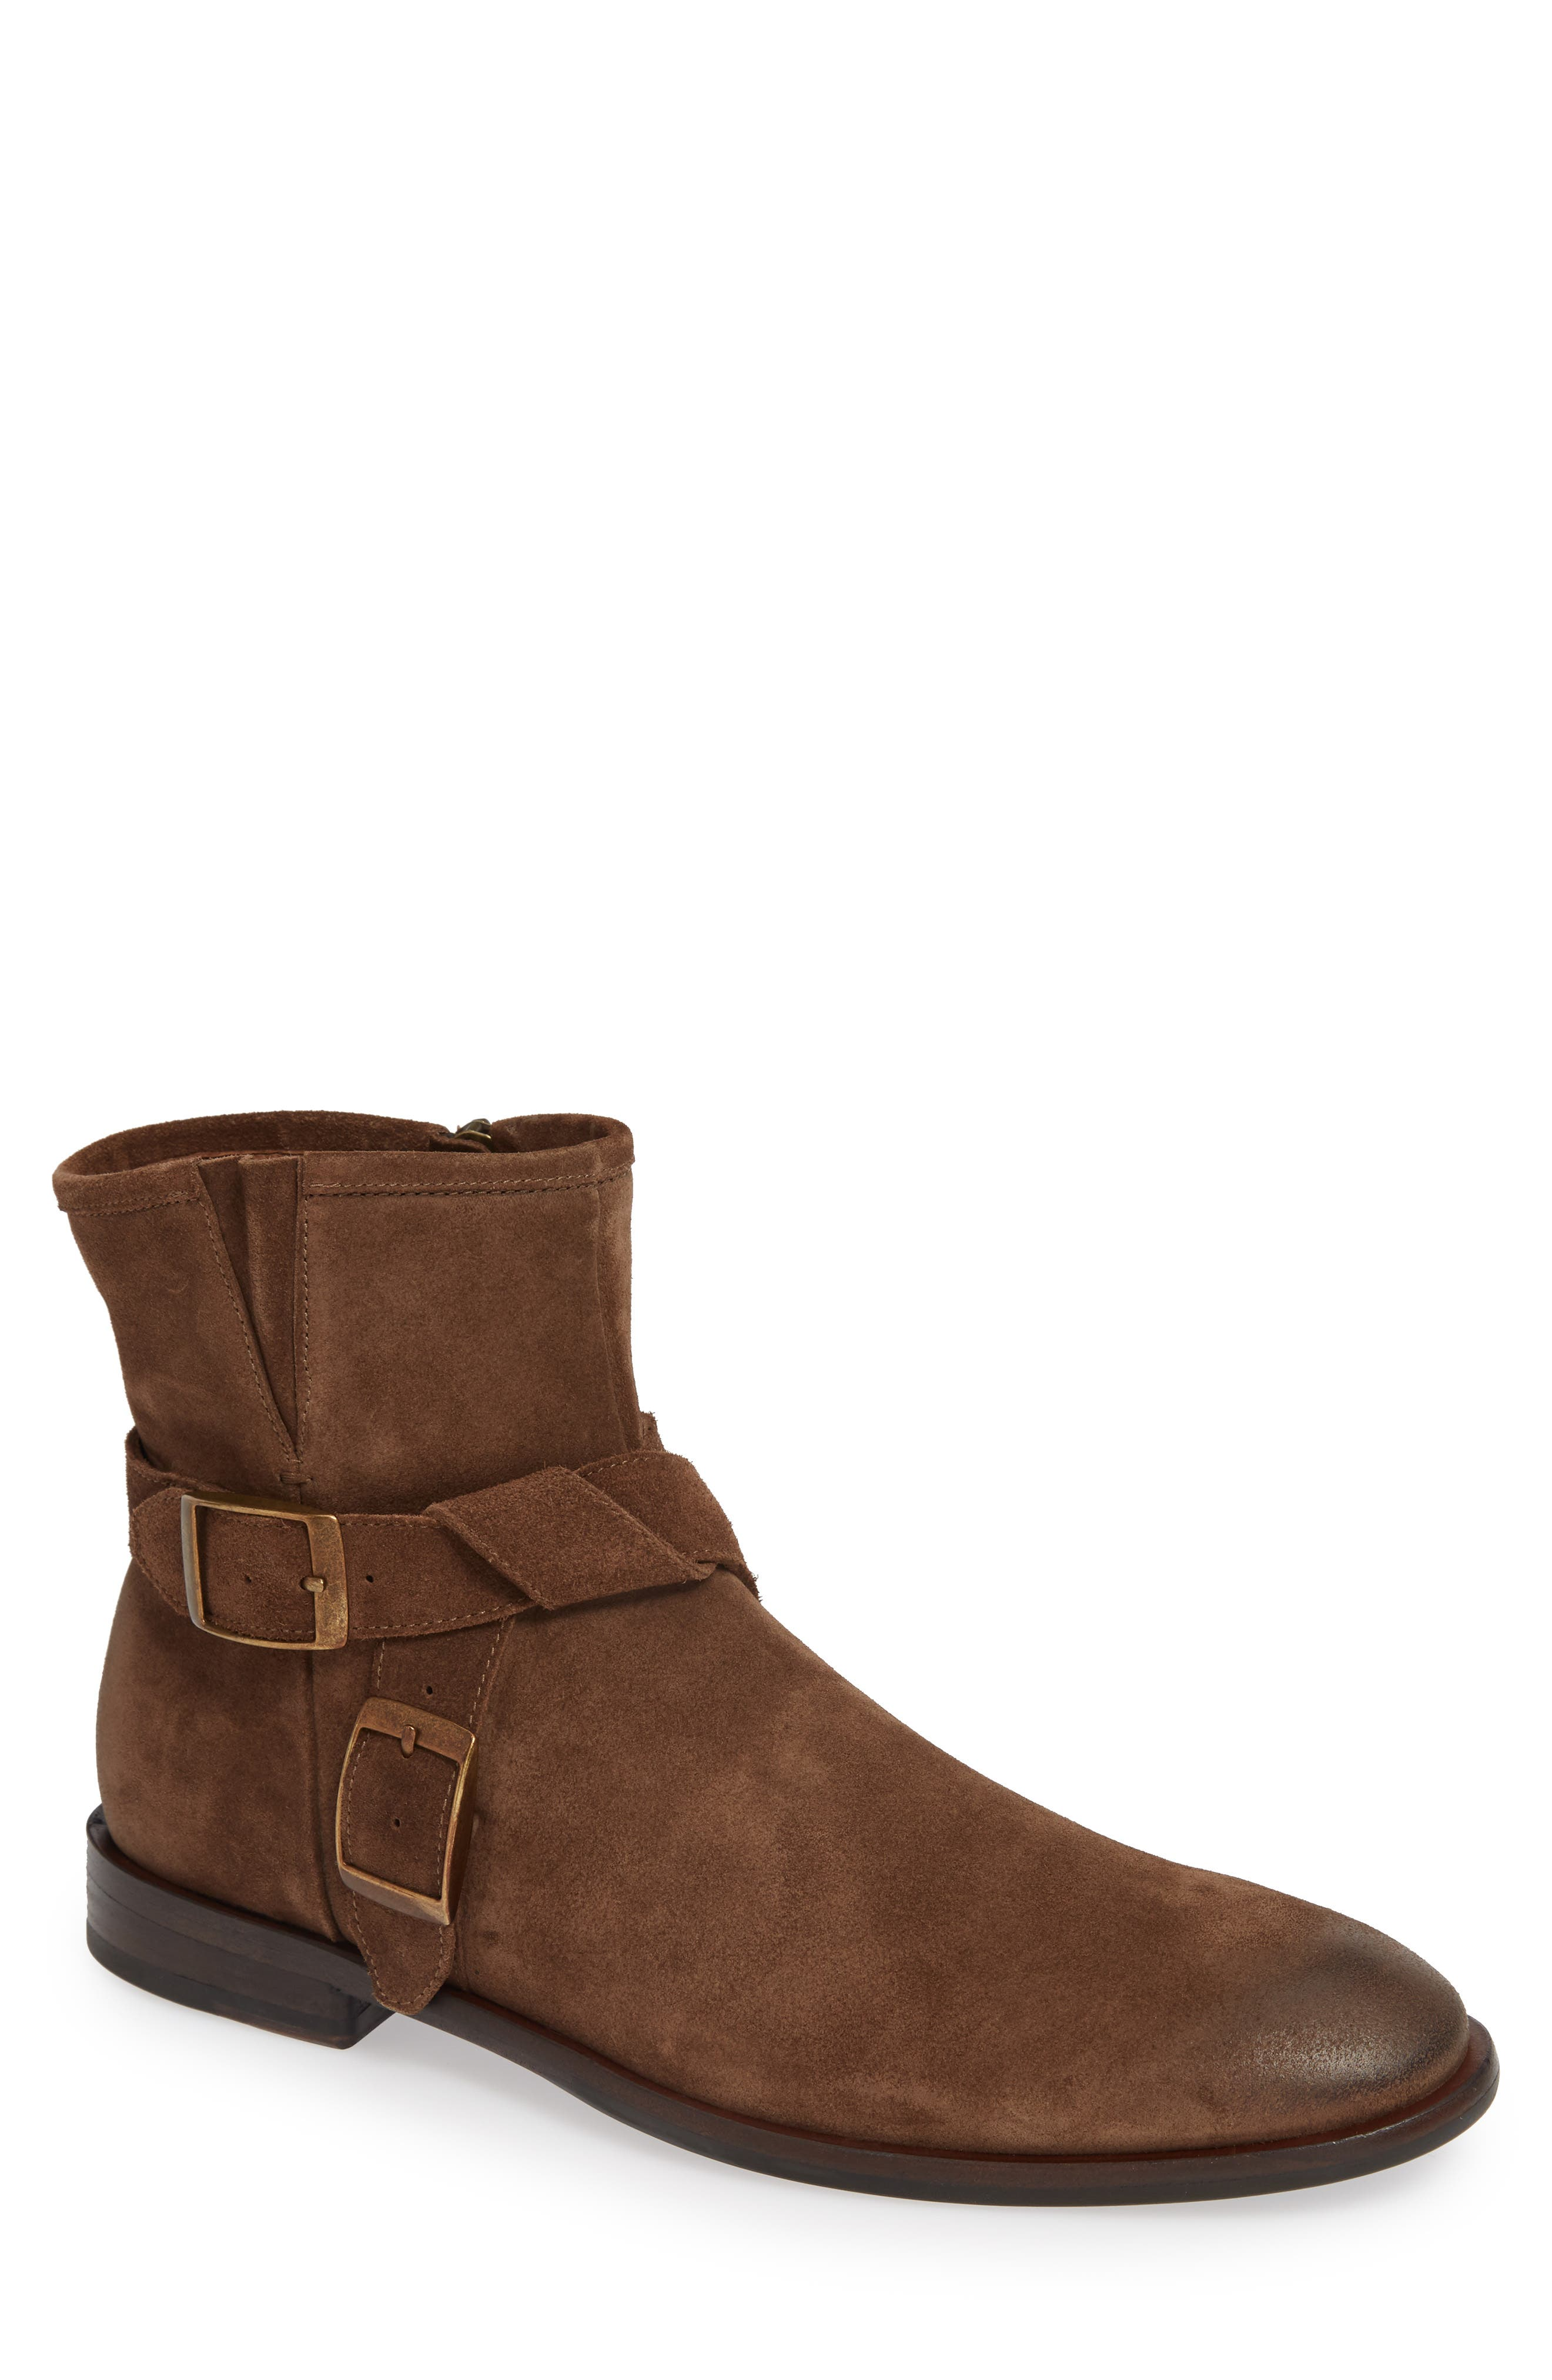 John Varvatos NYC Double Buckle Tall Boot,                             Main thumbnail 1, color,                             ANTIQUE BROWN SUEDE